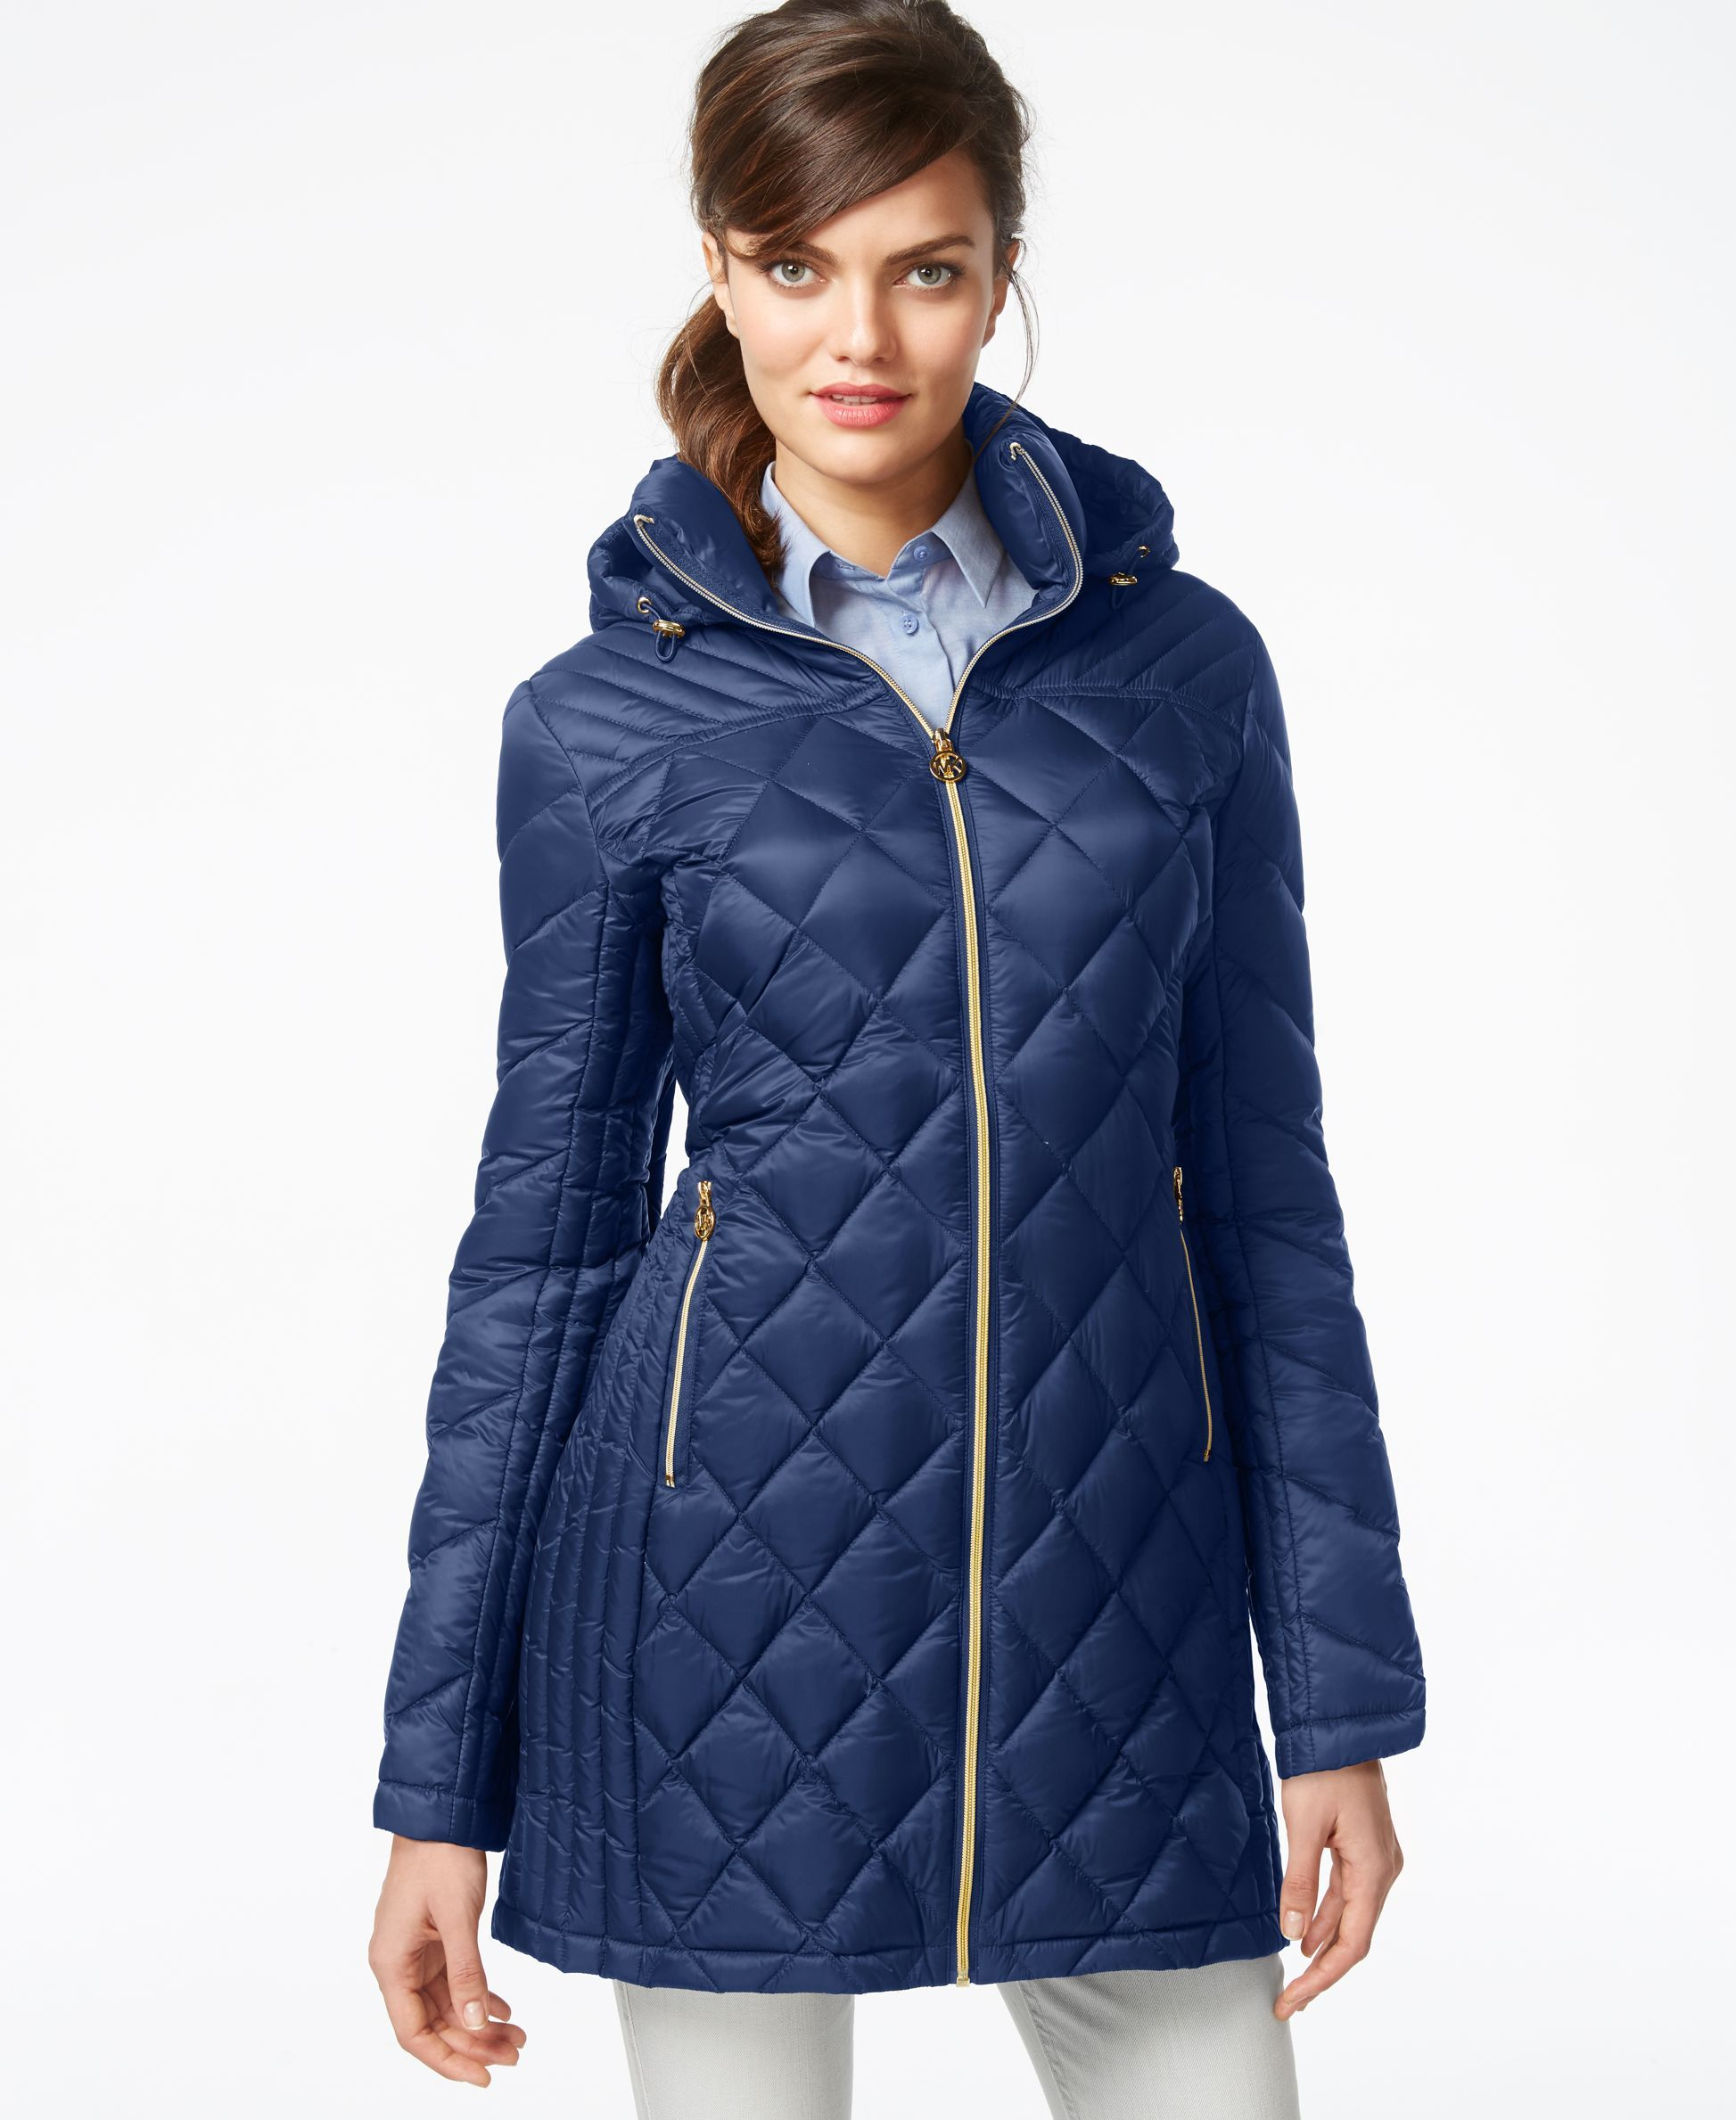 MICHAEL Michael Kors' down puffer coat will keep her warm in